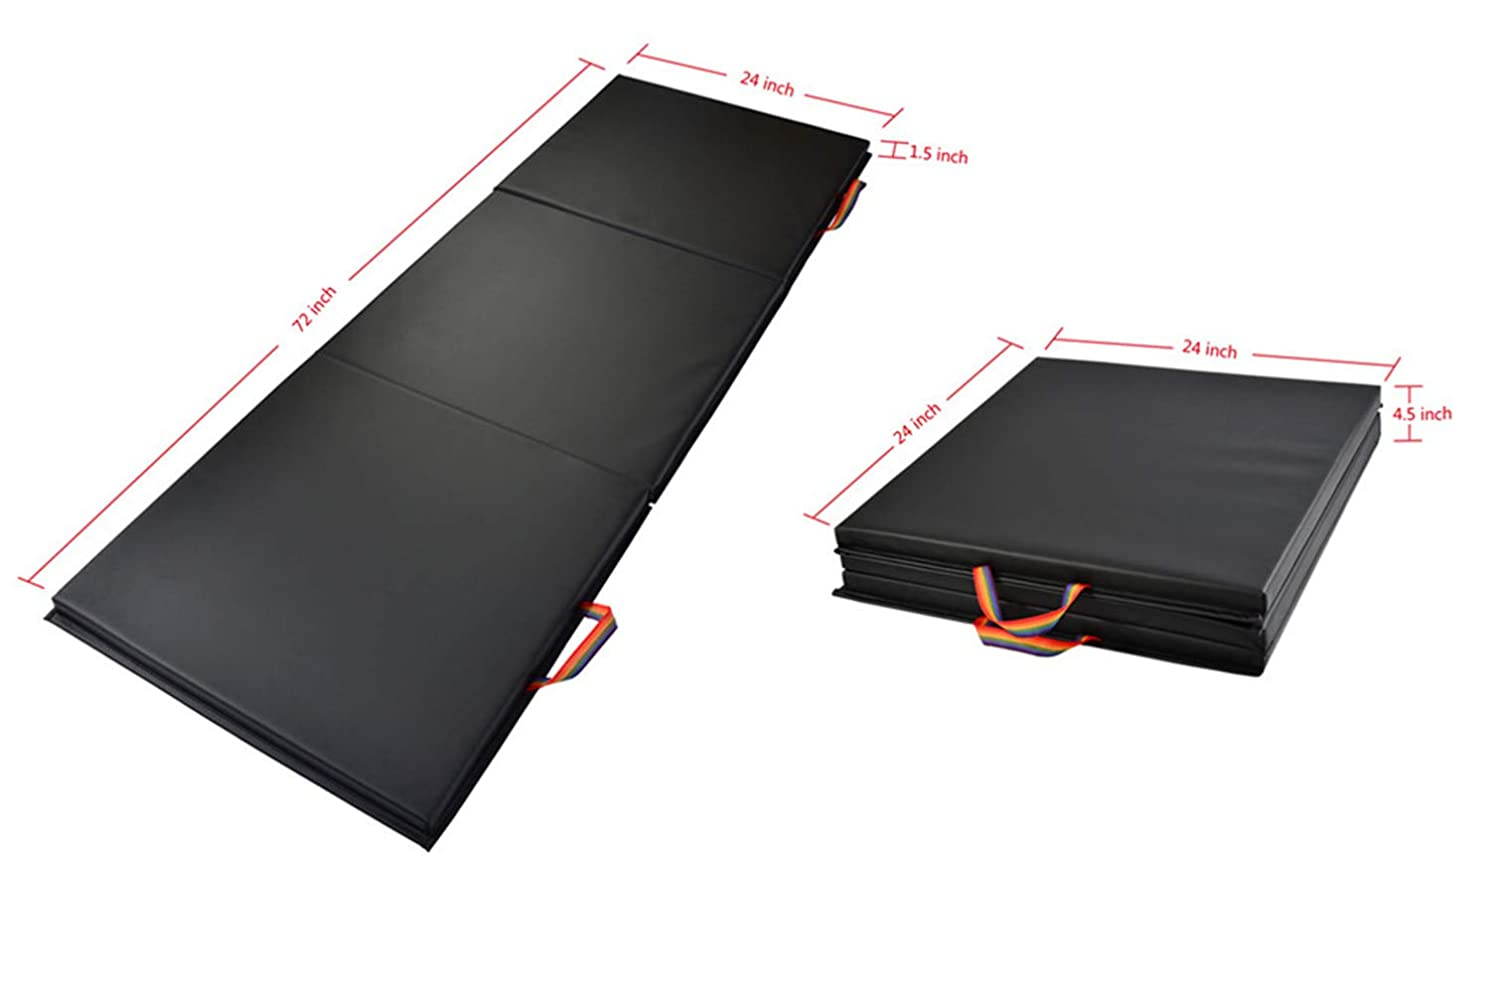 Amazon.com : KTOURT Exercise Mats-Folding Thick Gym Mat with ...